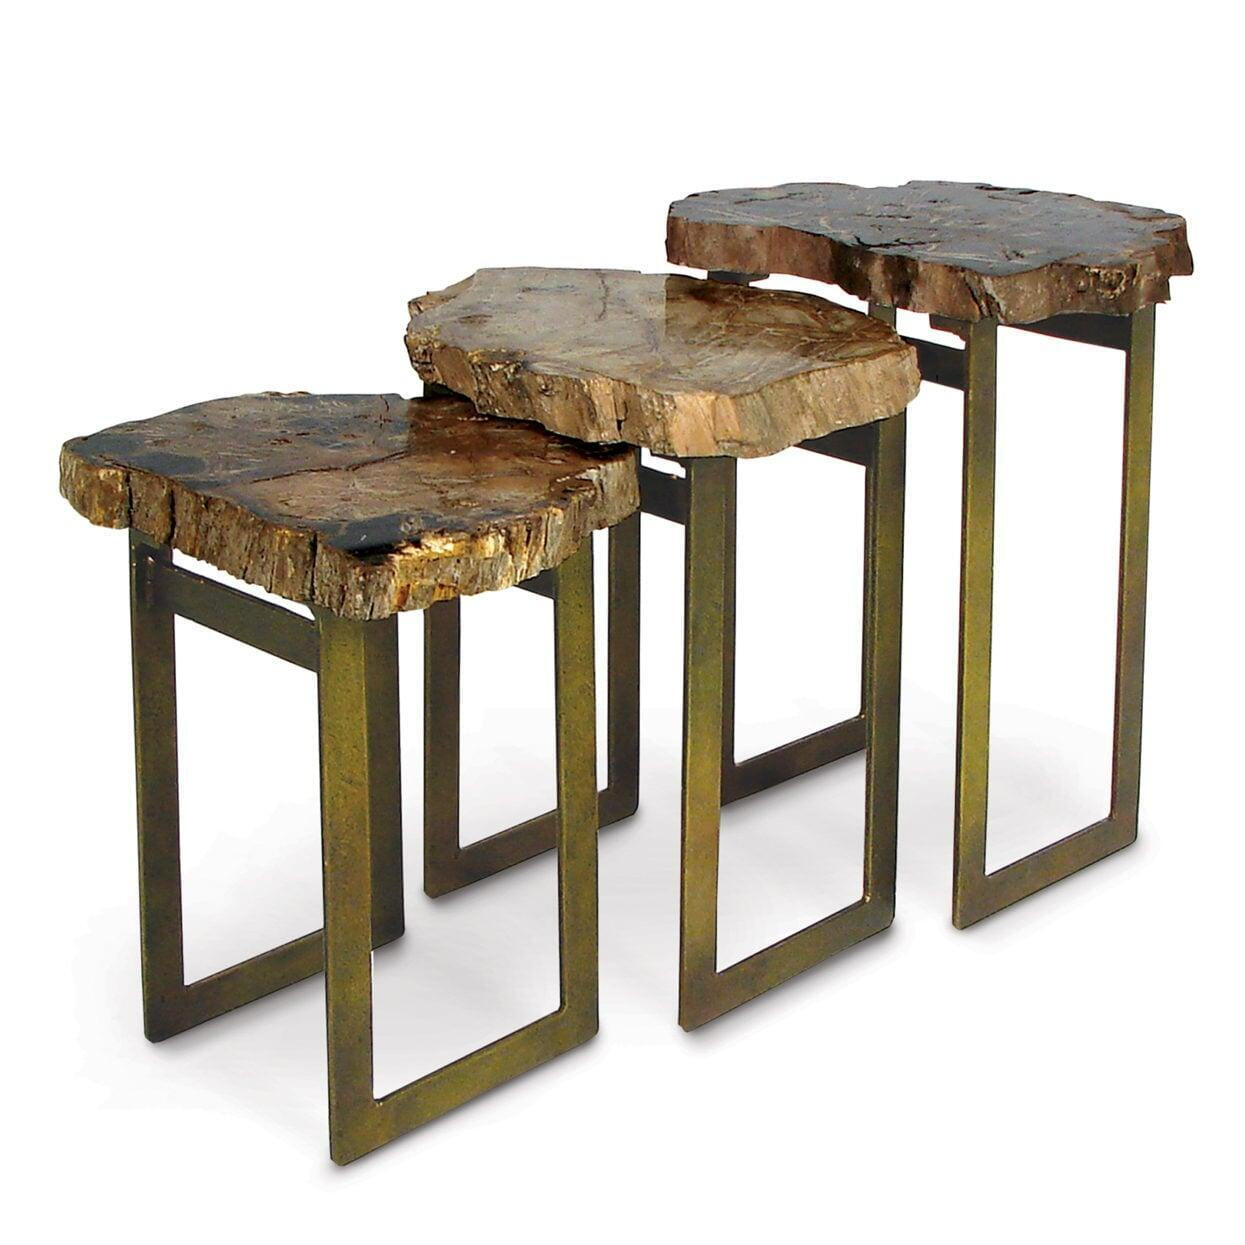 Amazing Petrified Wood Casa Arte Decor Gmtry Best Dining Table And Chair Ideas Images Gmtryco